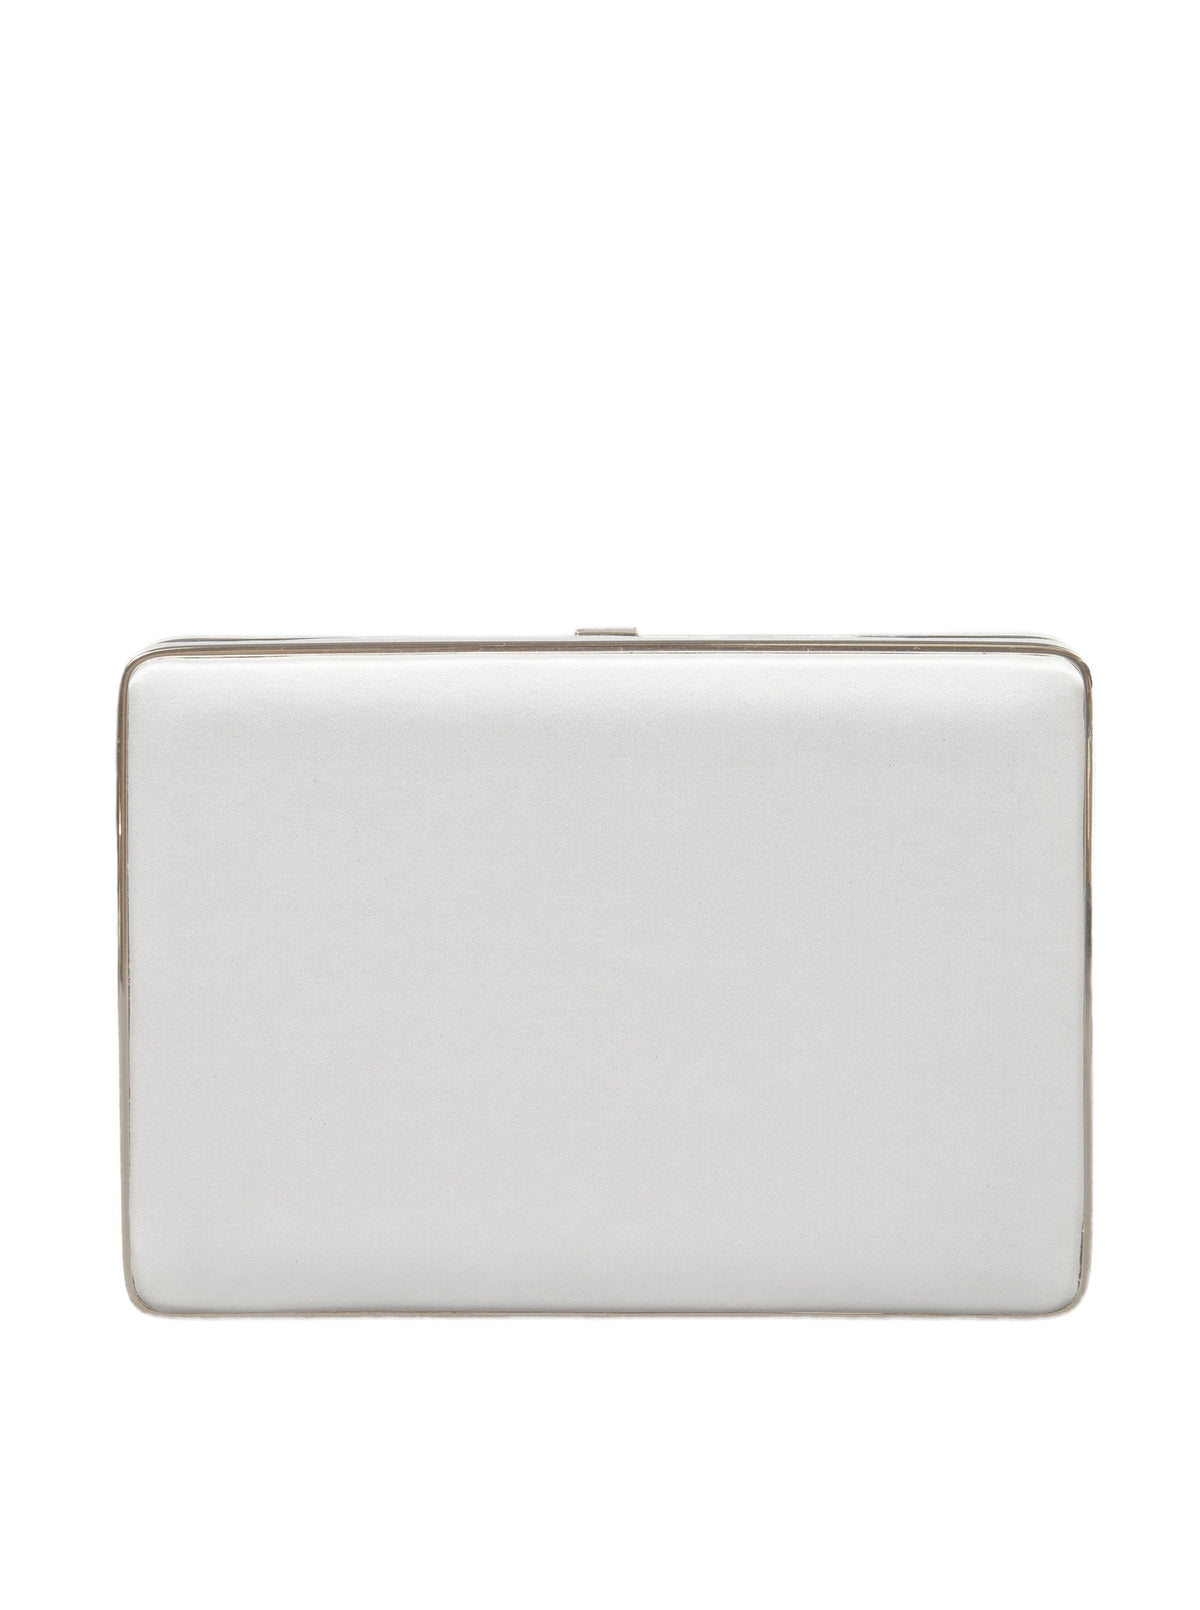 The Square Compact Case in Satin